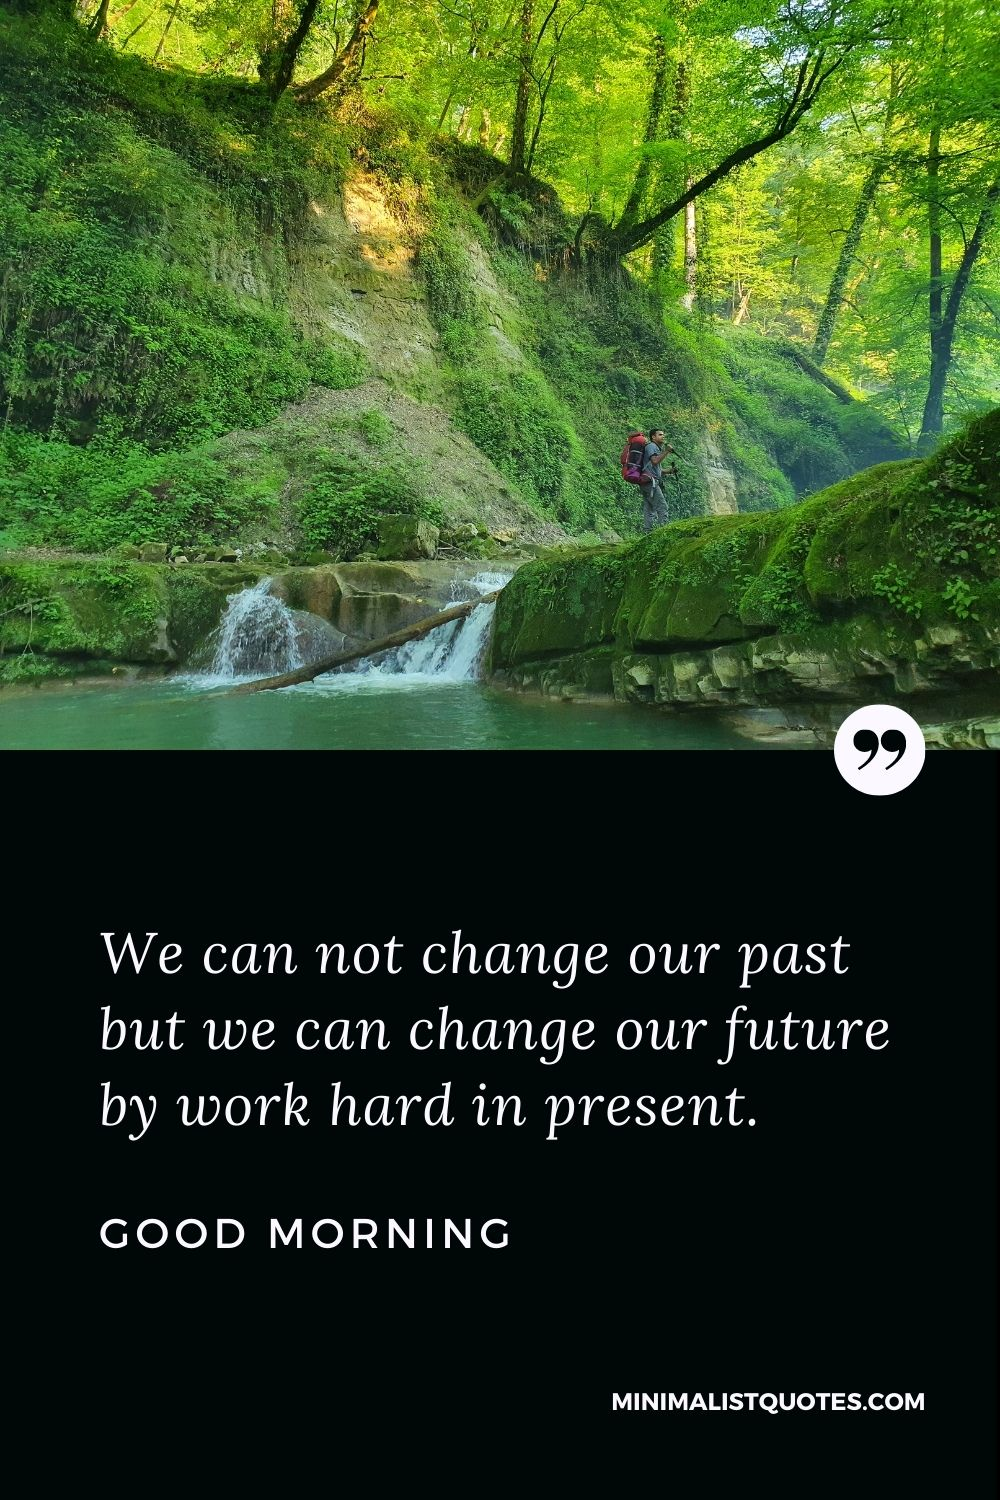 Good Morning Wish & Message With Image: We can not change our past but we can change our future by work hard in present.